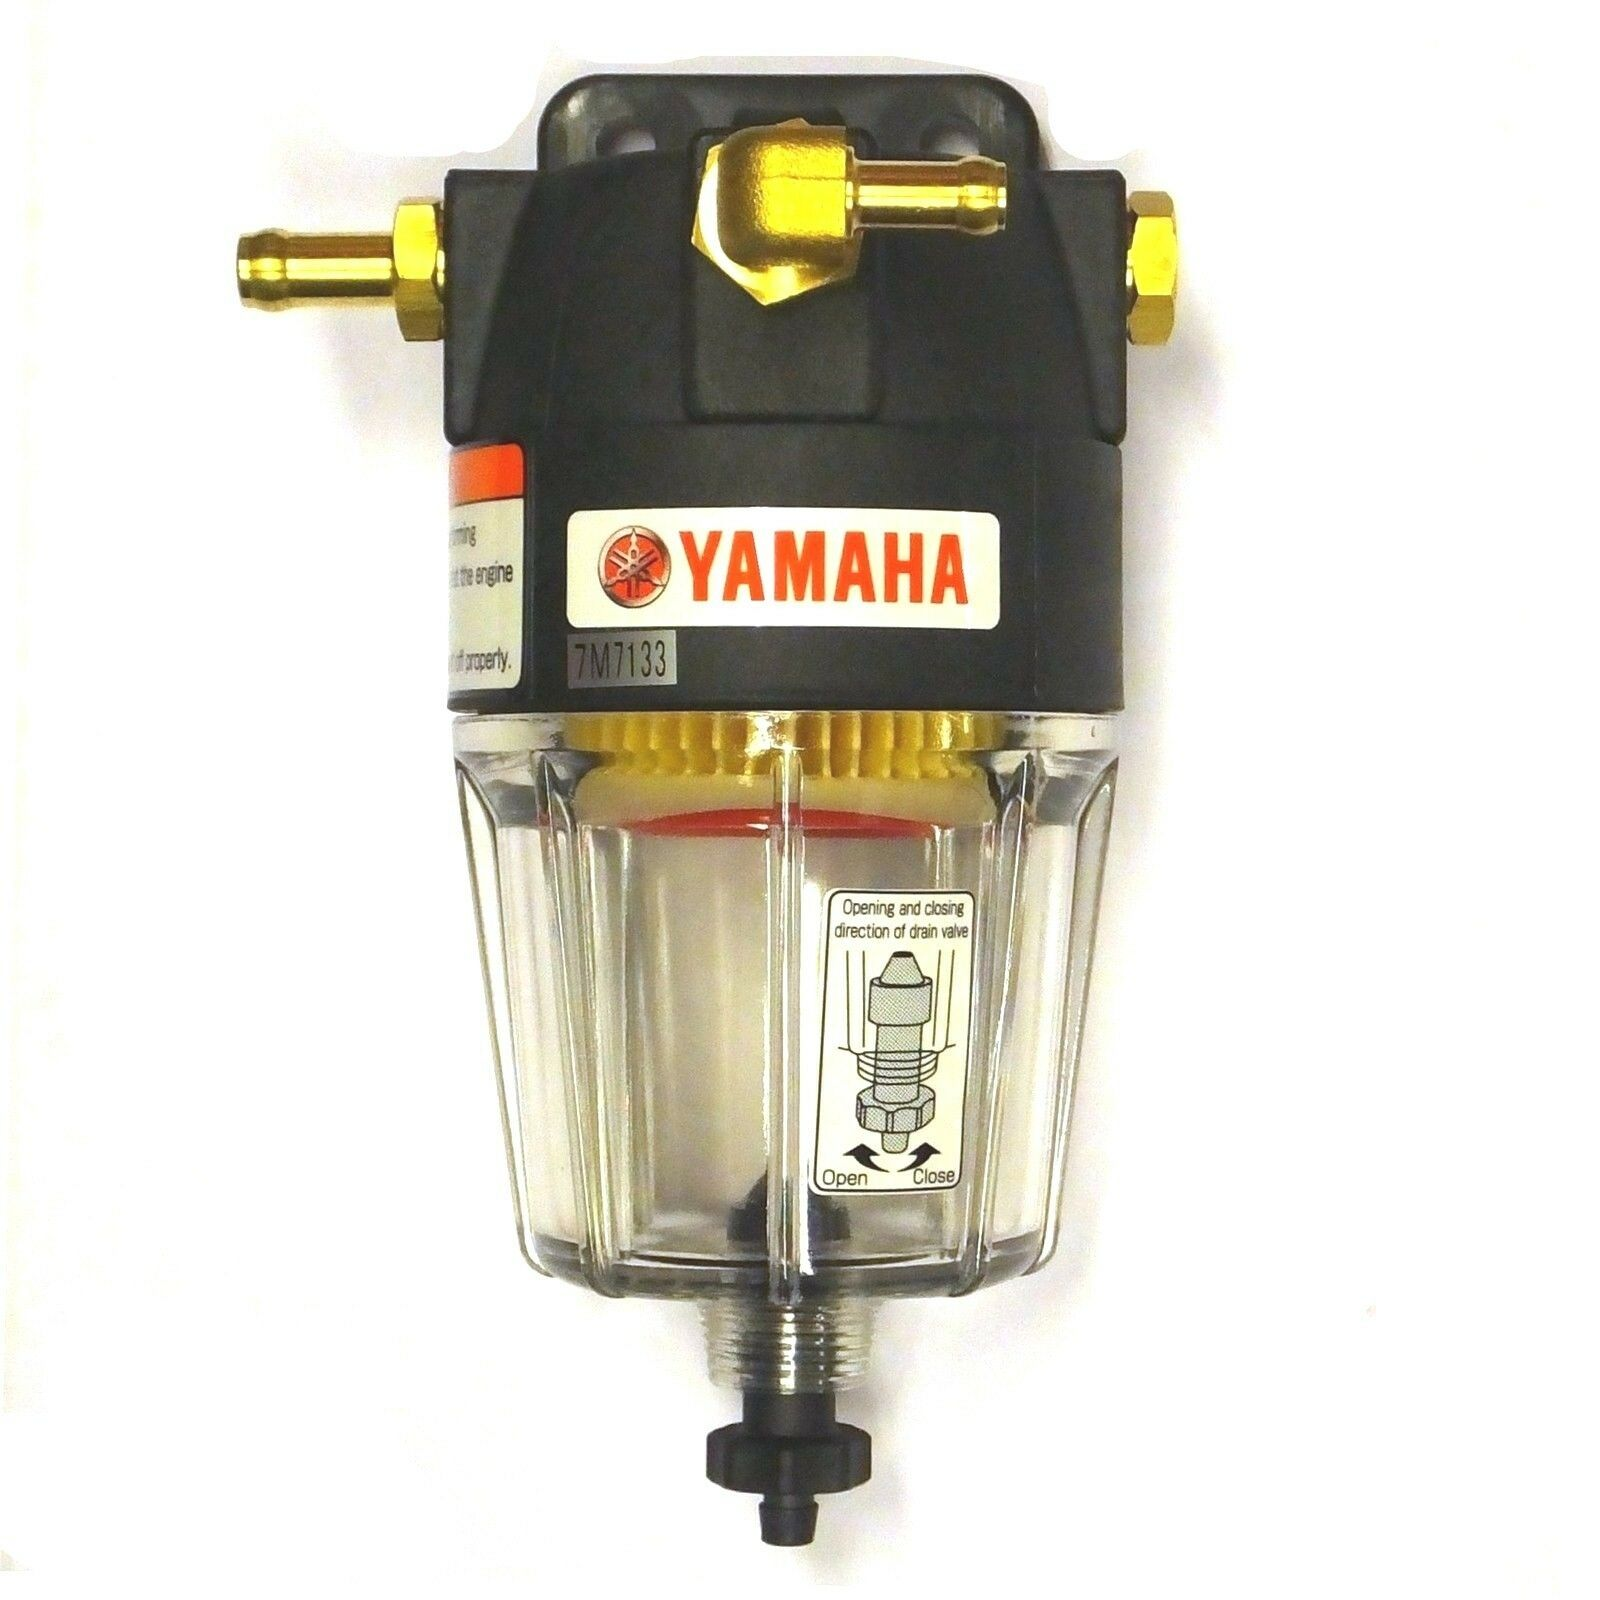 Yamaha Water Separating Fuel Filter Up To 300hp Marine Engine 1 Of 1free Shipping